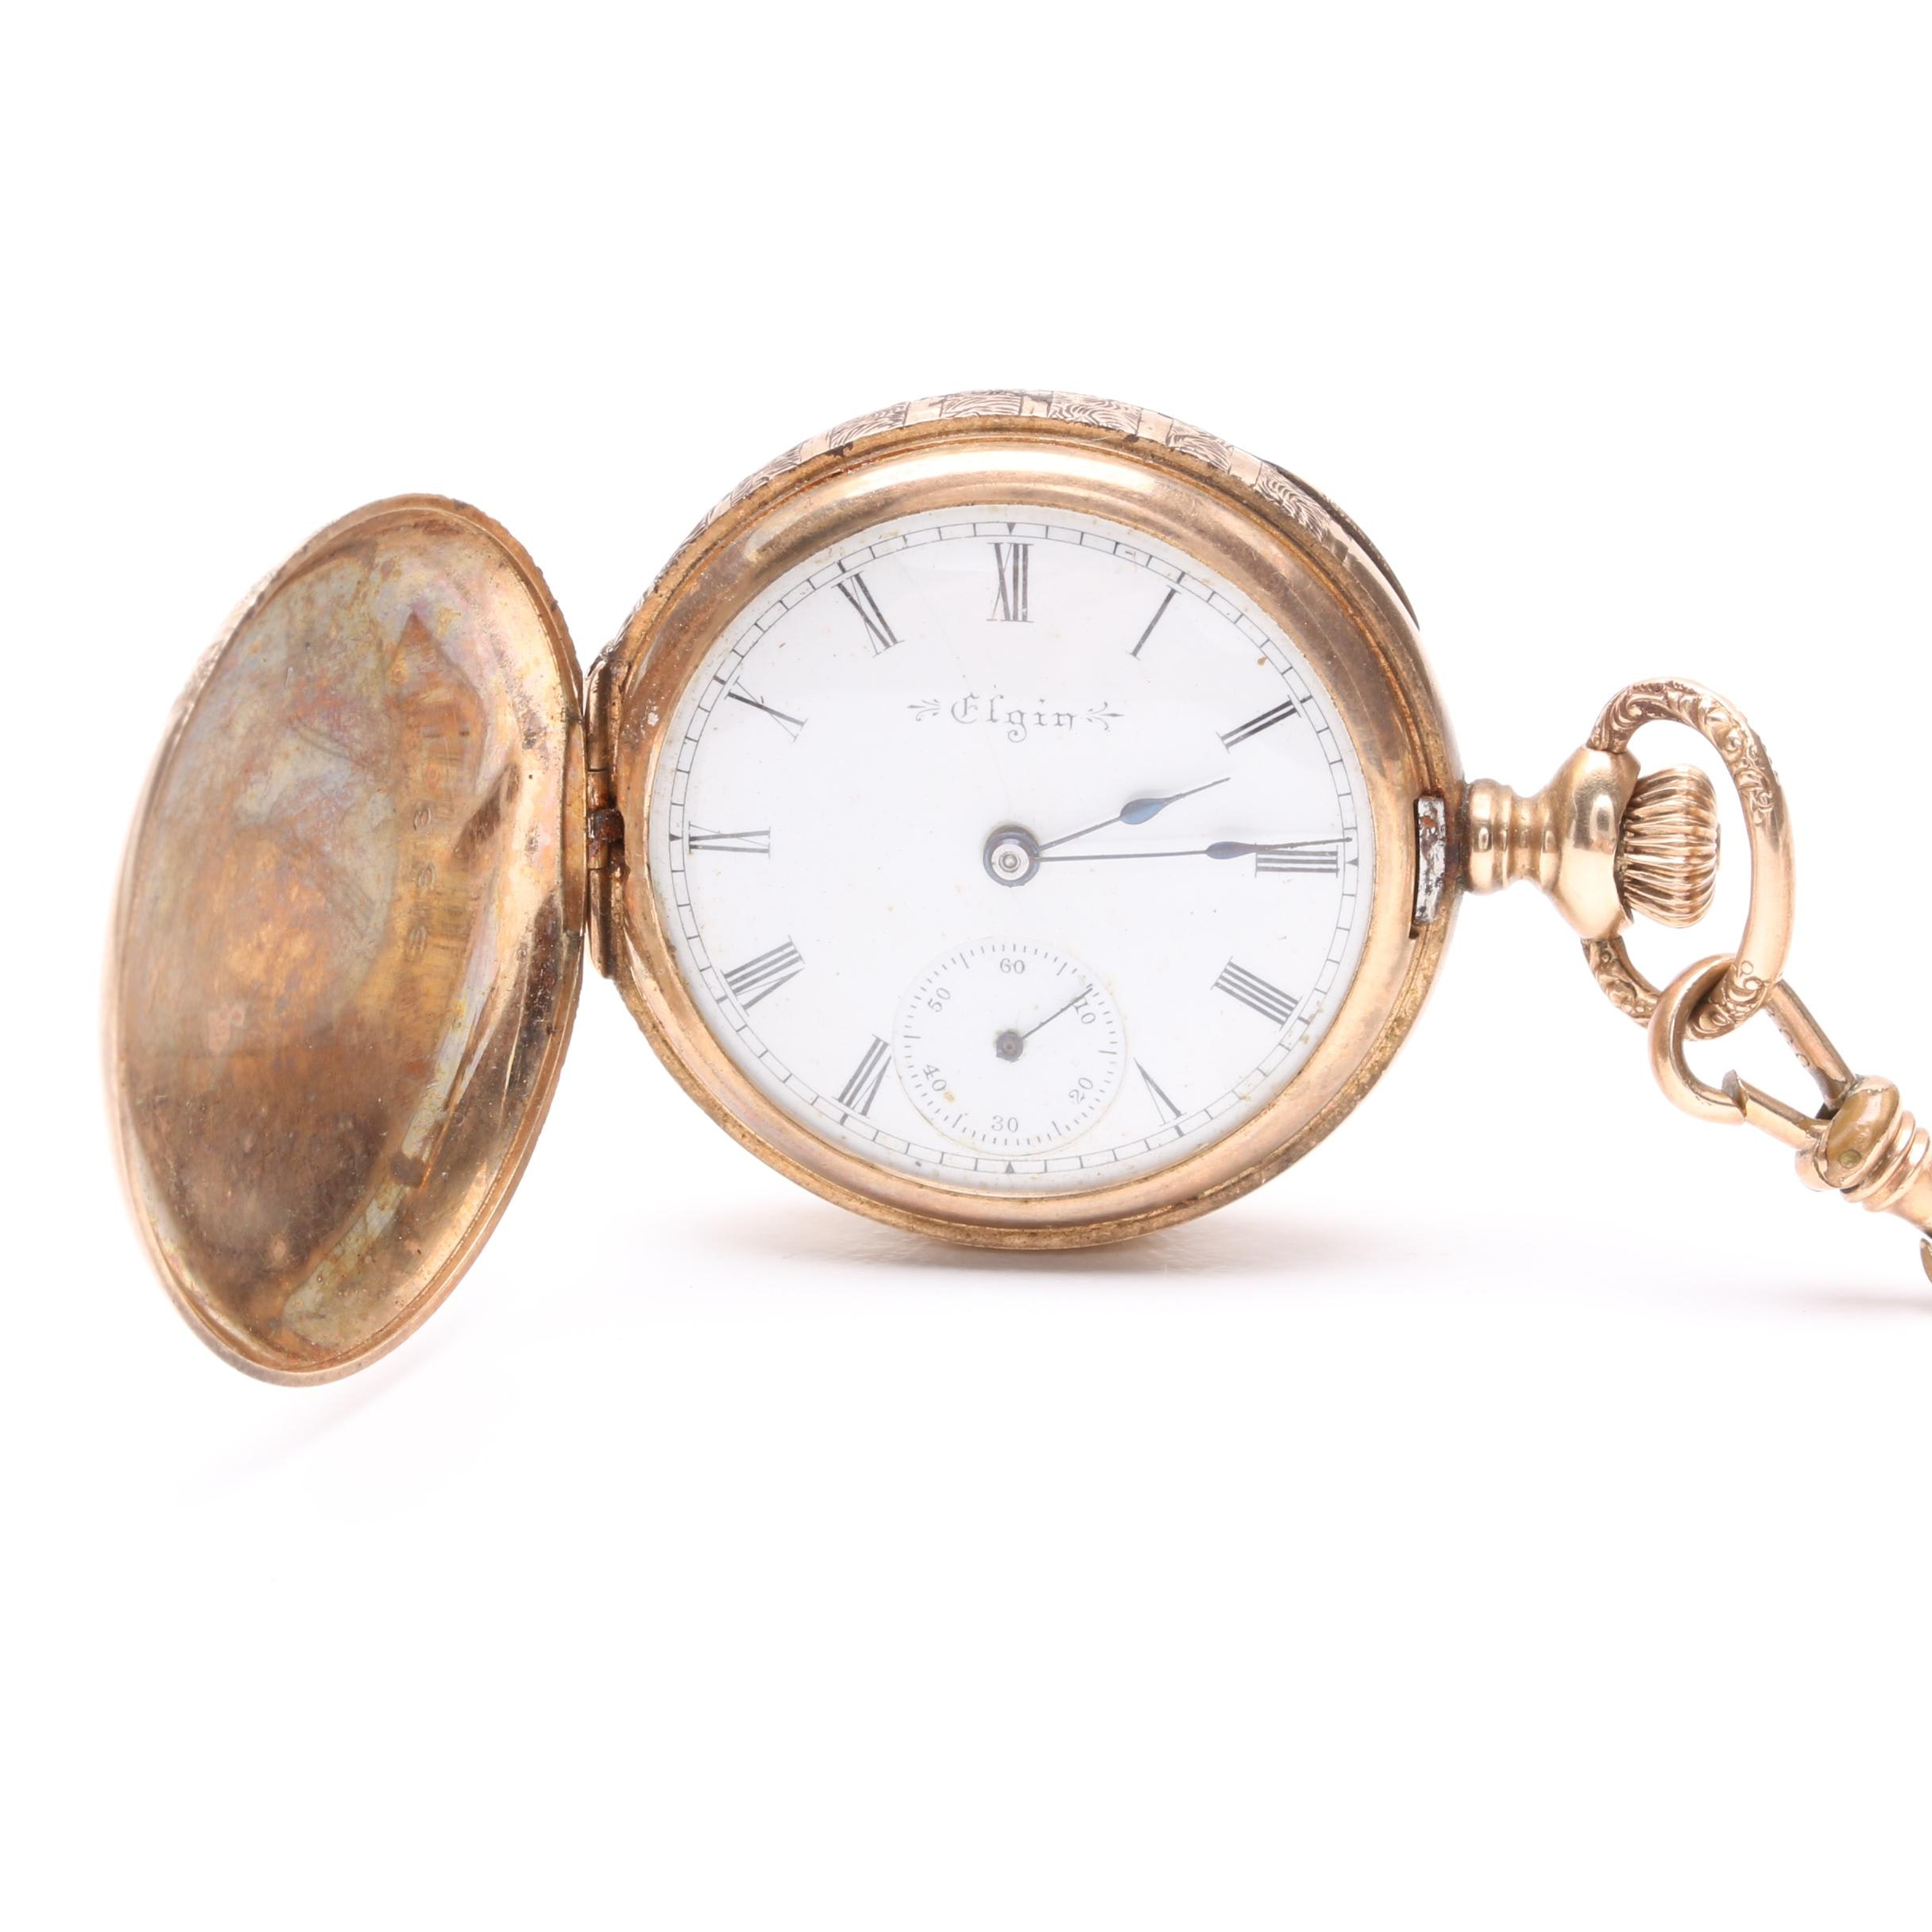 1898 Elgin 14K Yellow Gold Pocket Watch With Gold Filled and Seed Pearl Chain